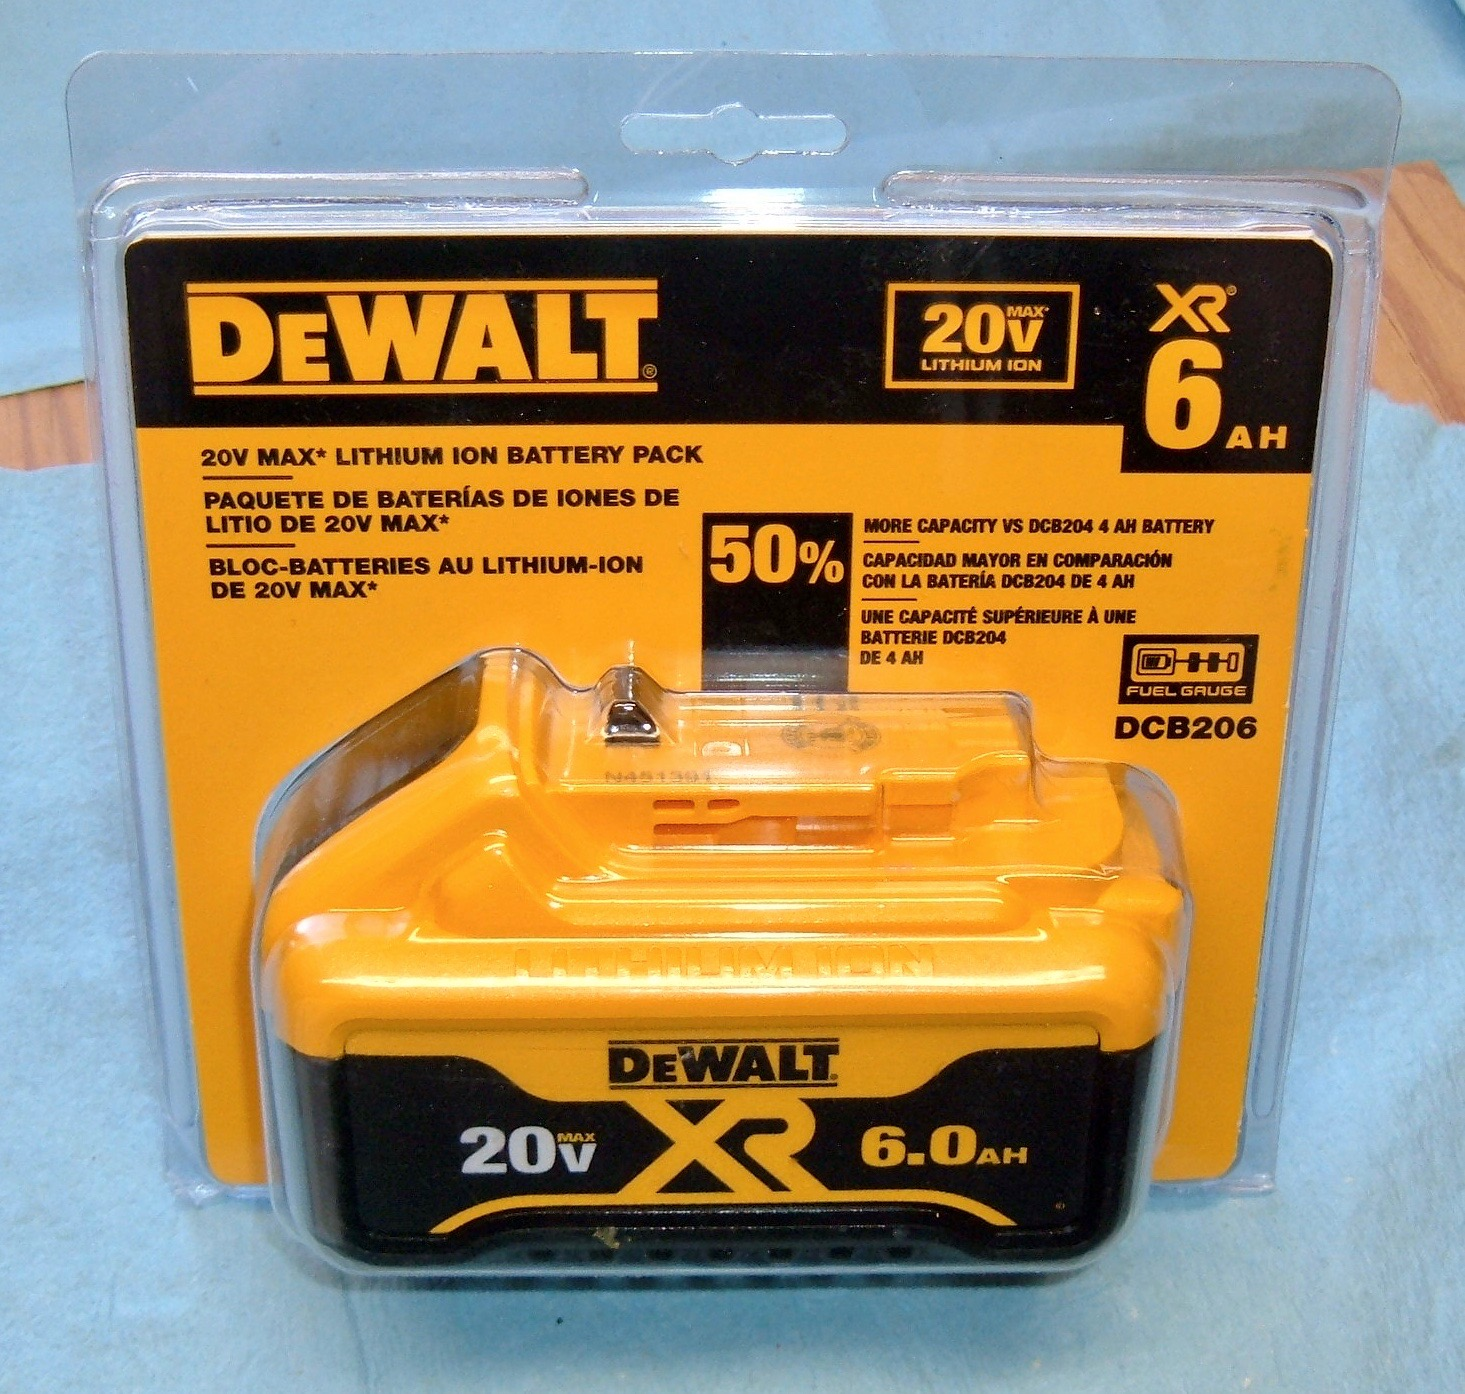 Syonyk's Project Blog: DeWalt 20V Max 6 0Ah Pack Teardown